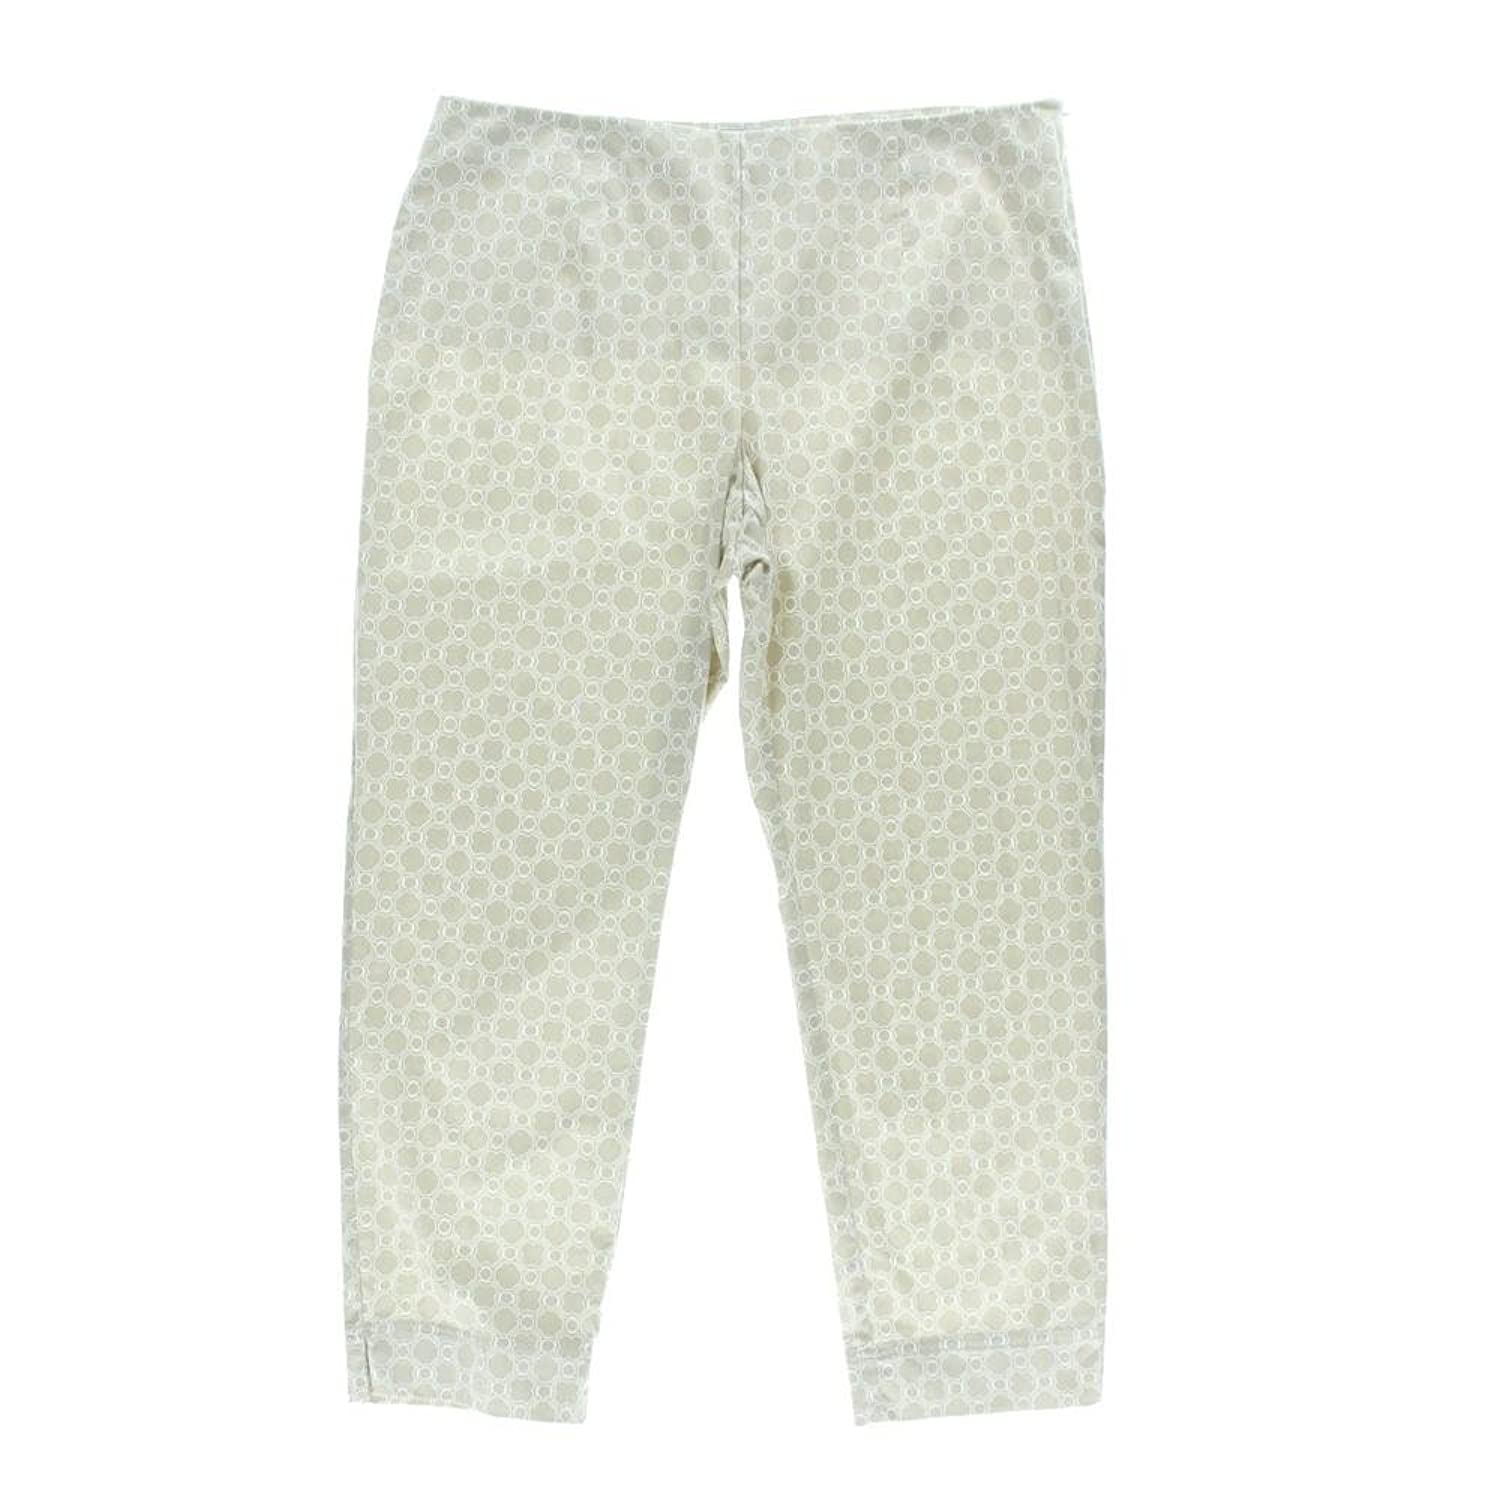 Charter Club Women's Patterned Pants